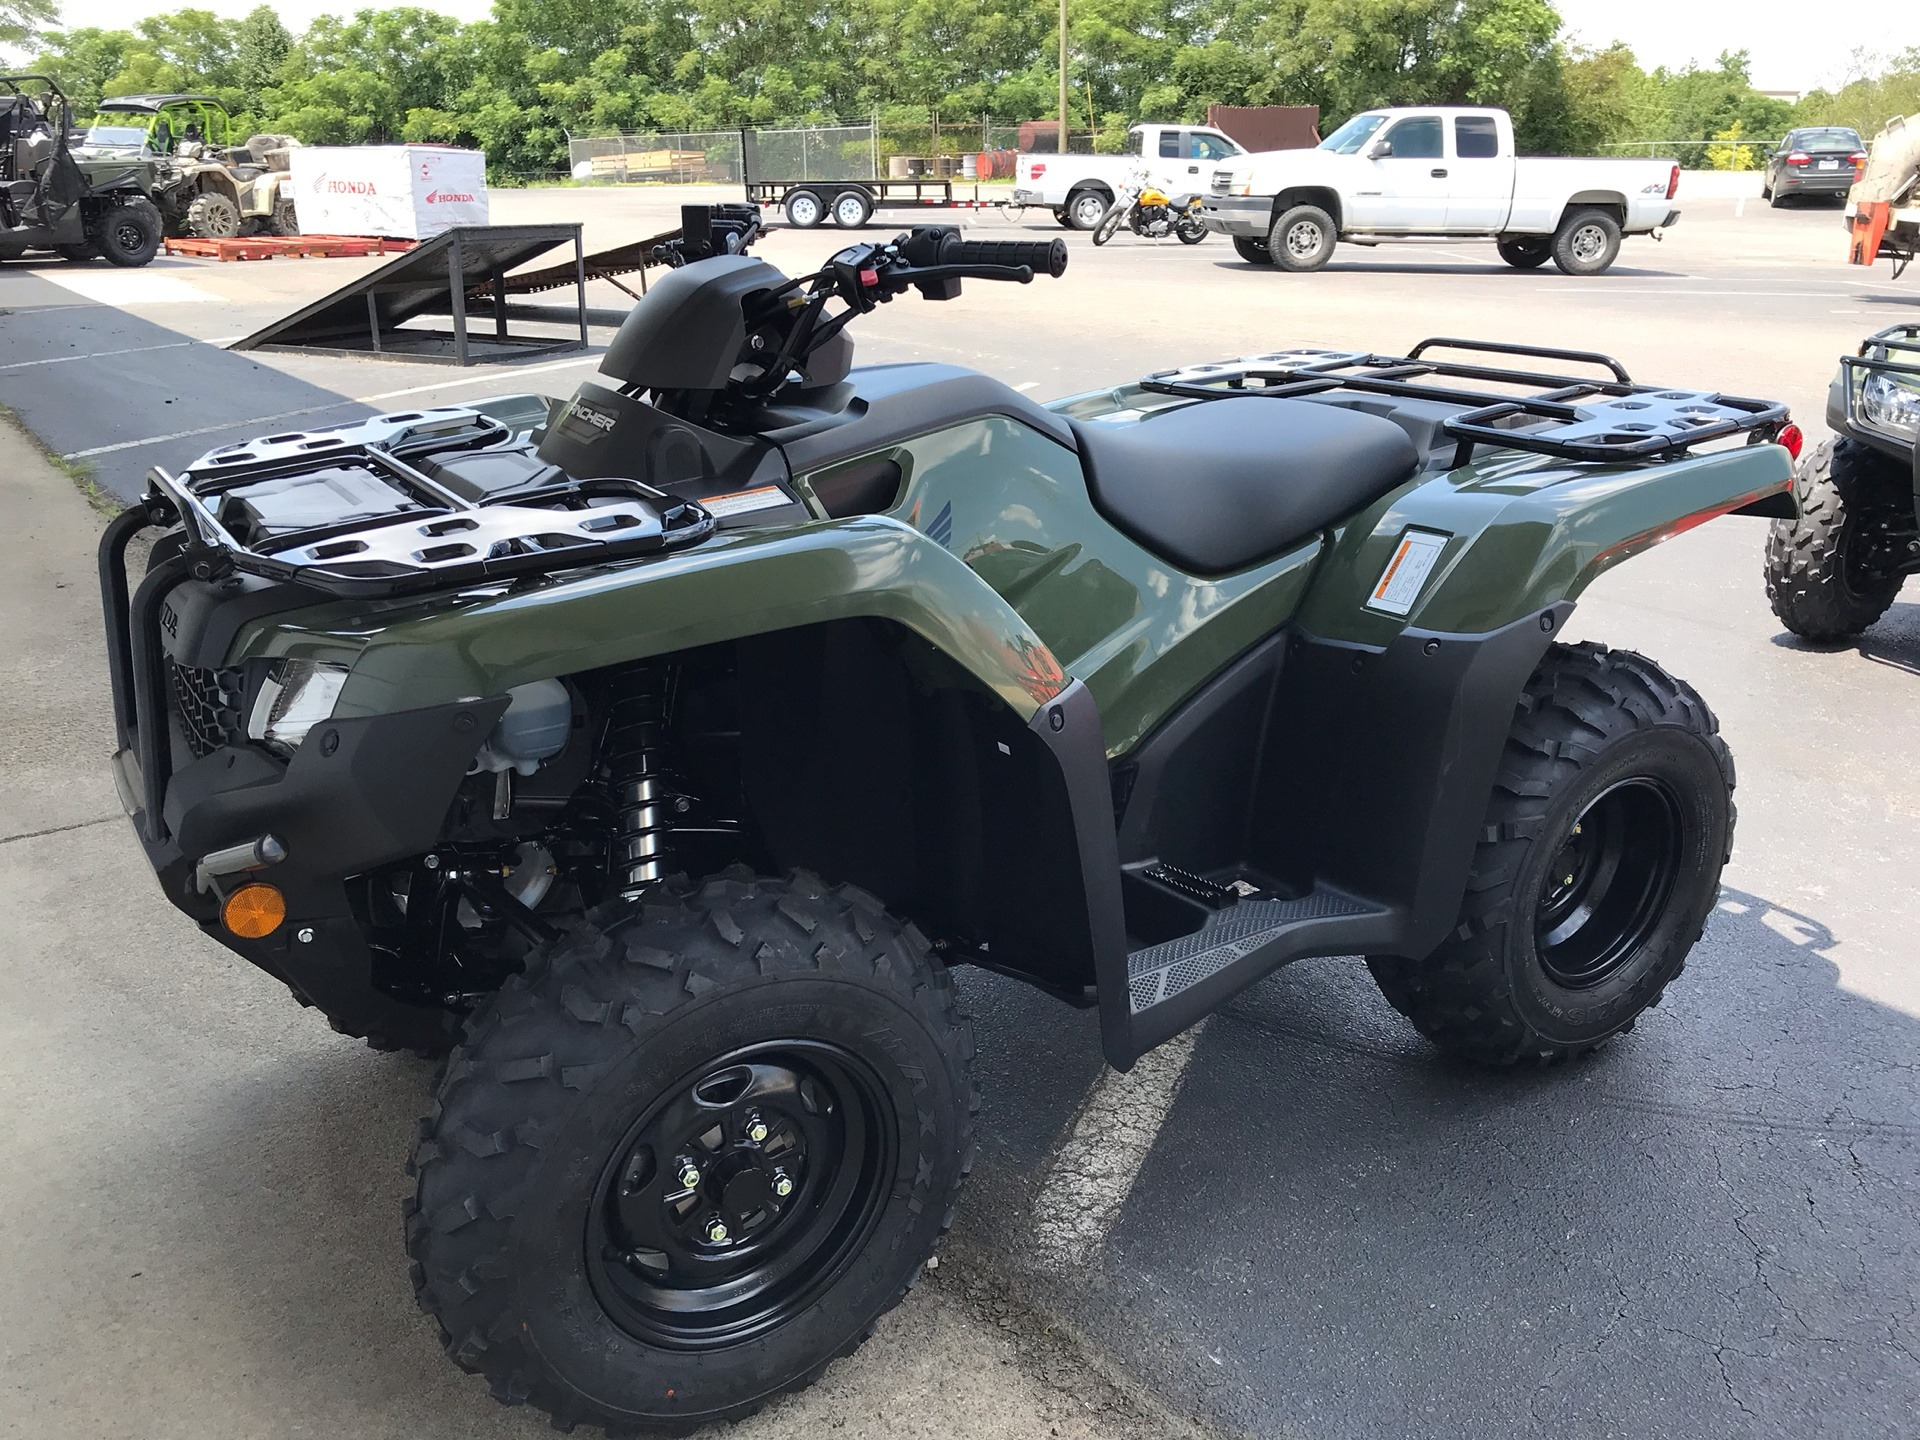 2020 Honda FourTrax Rancher in Sanford, North Carolina - Photo 1